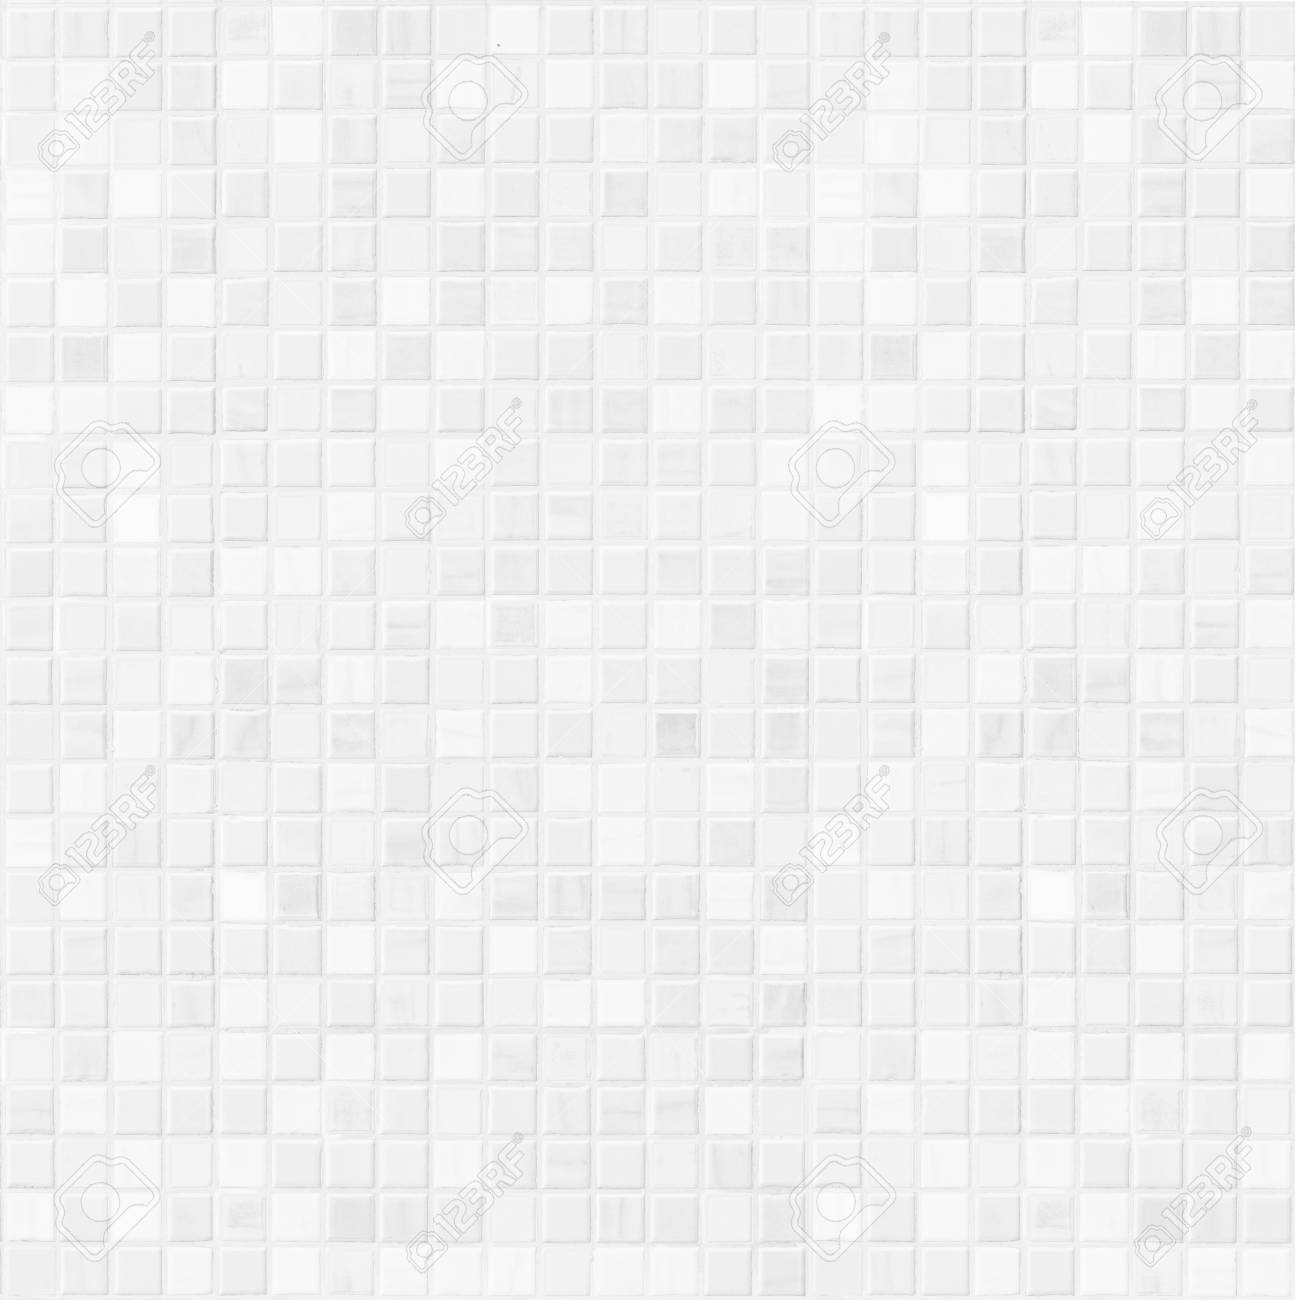 White Ceramic Bathroom Wall Tile Pattern For Background Stock Photo ...